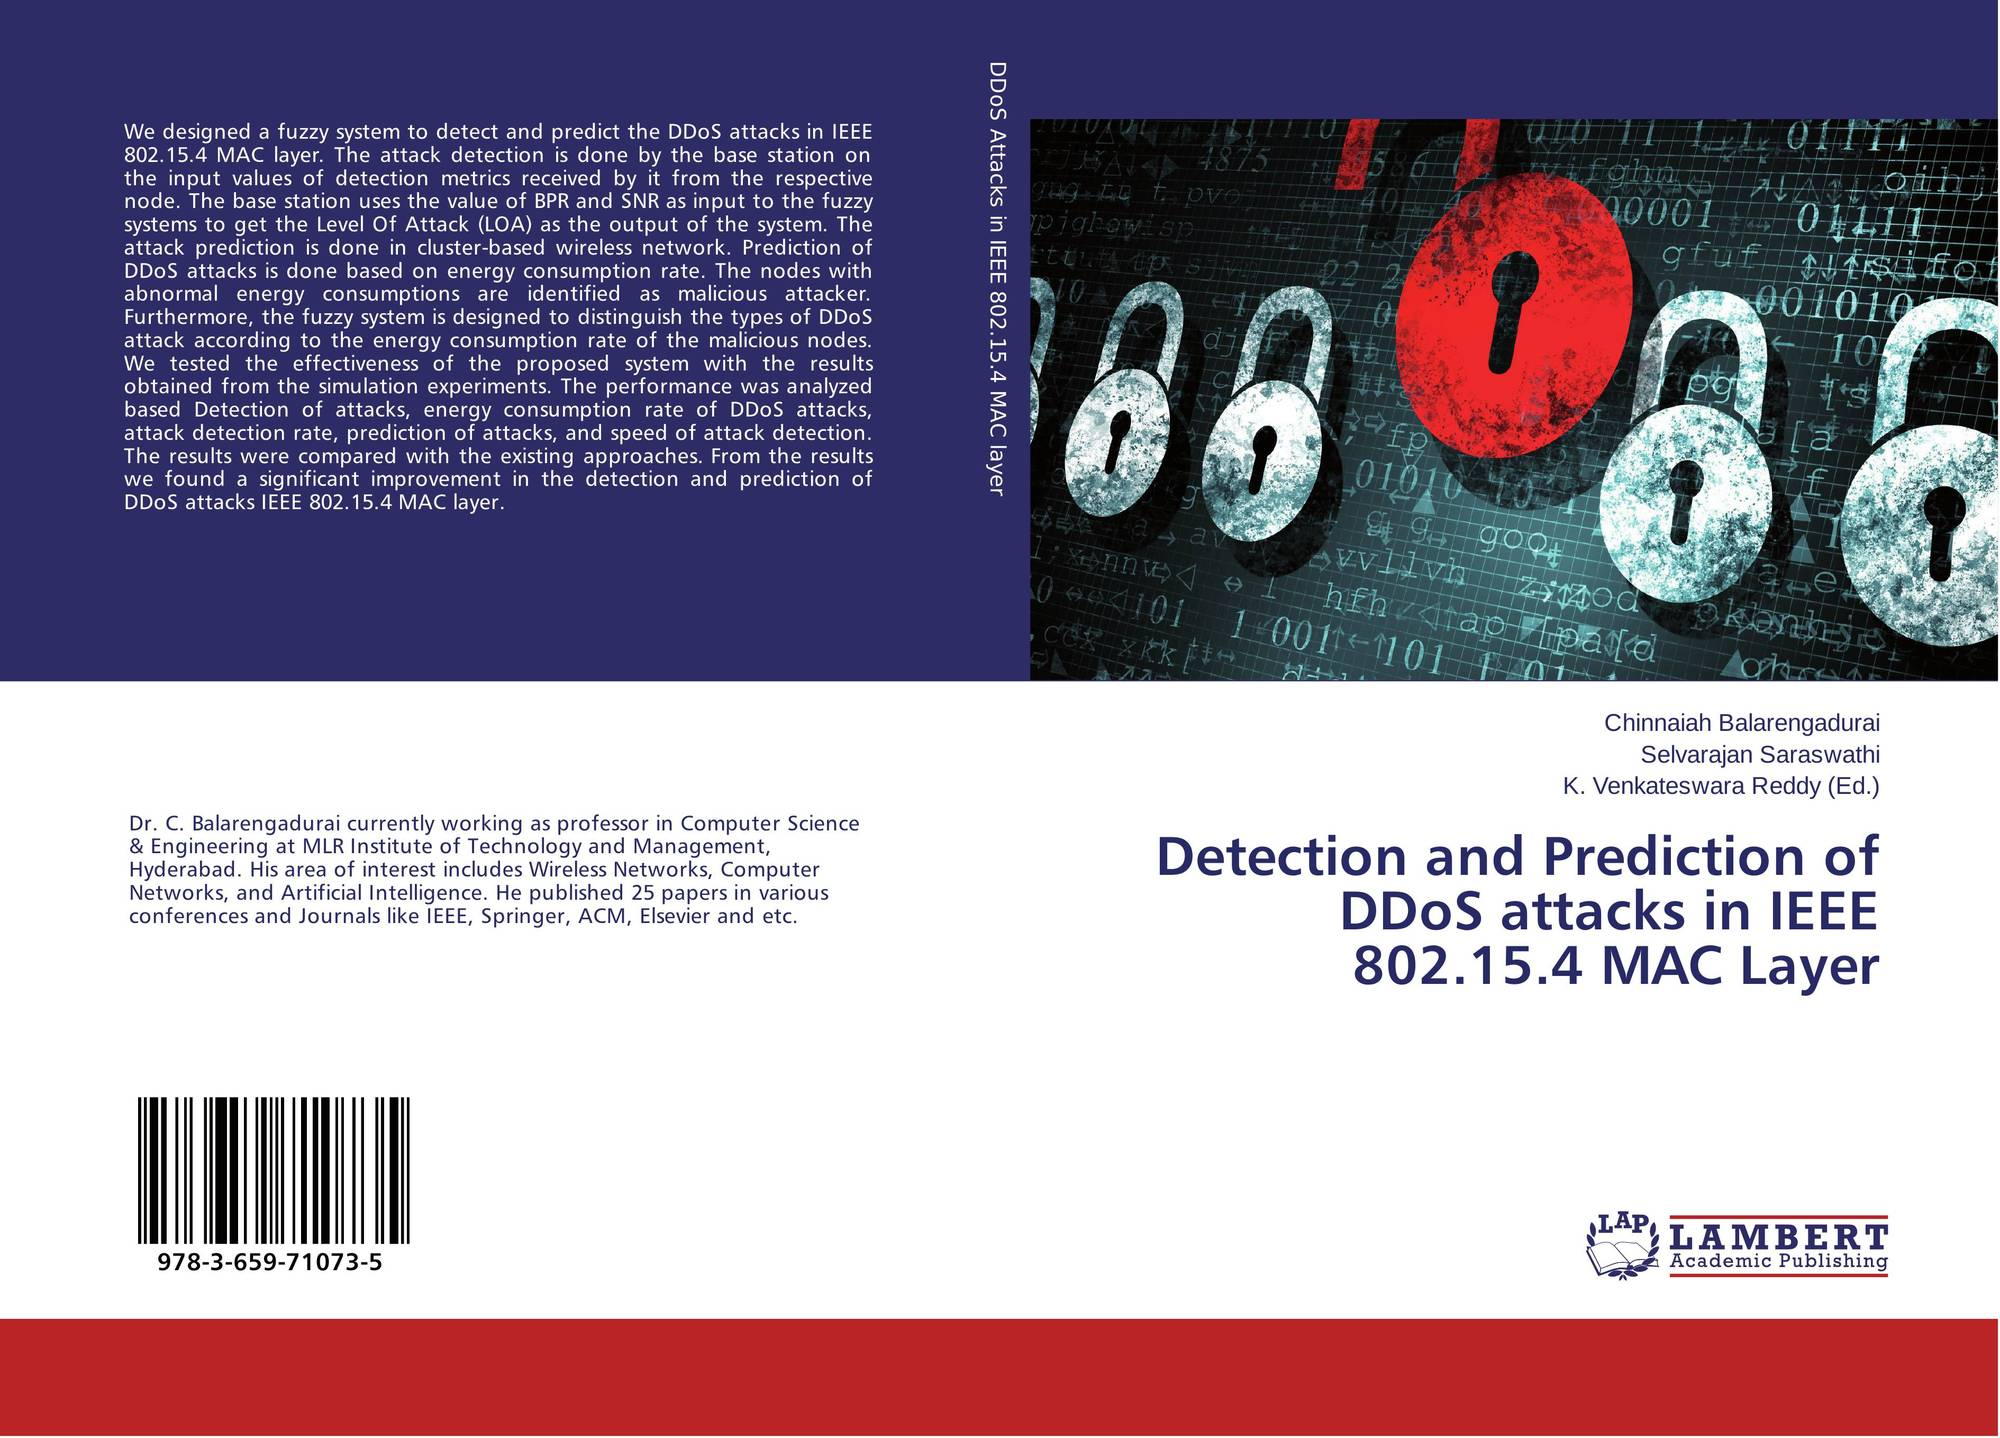 Detection and Prediction of DDoS attacks in IEEE 802 15 4